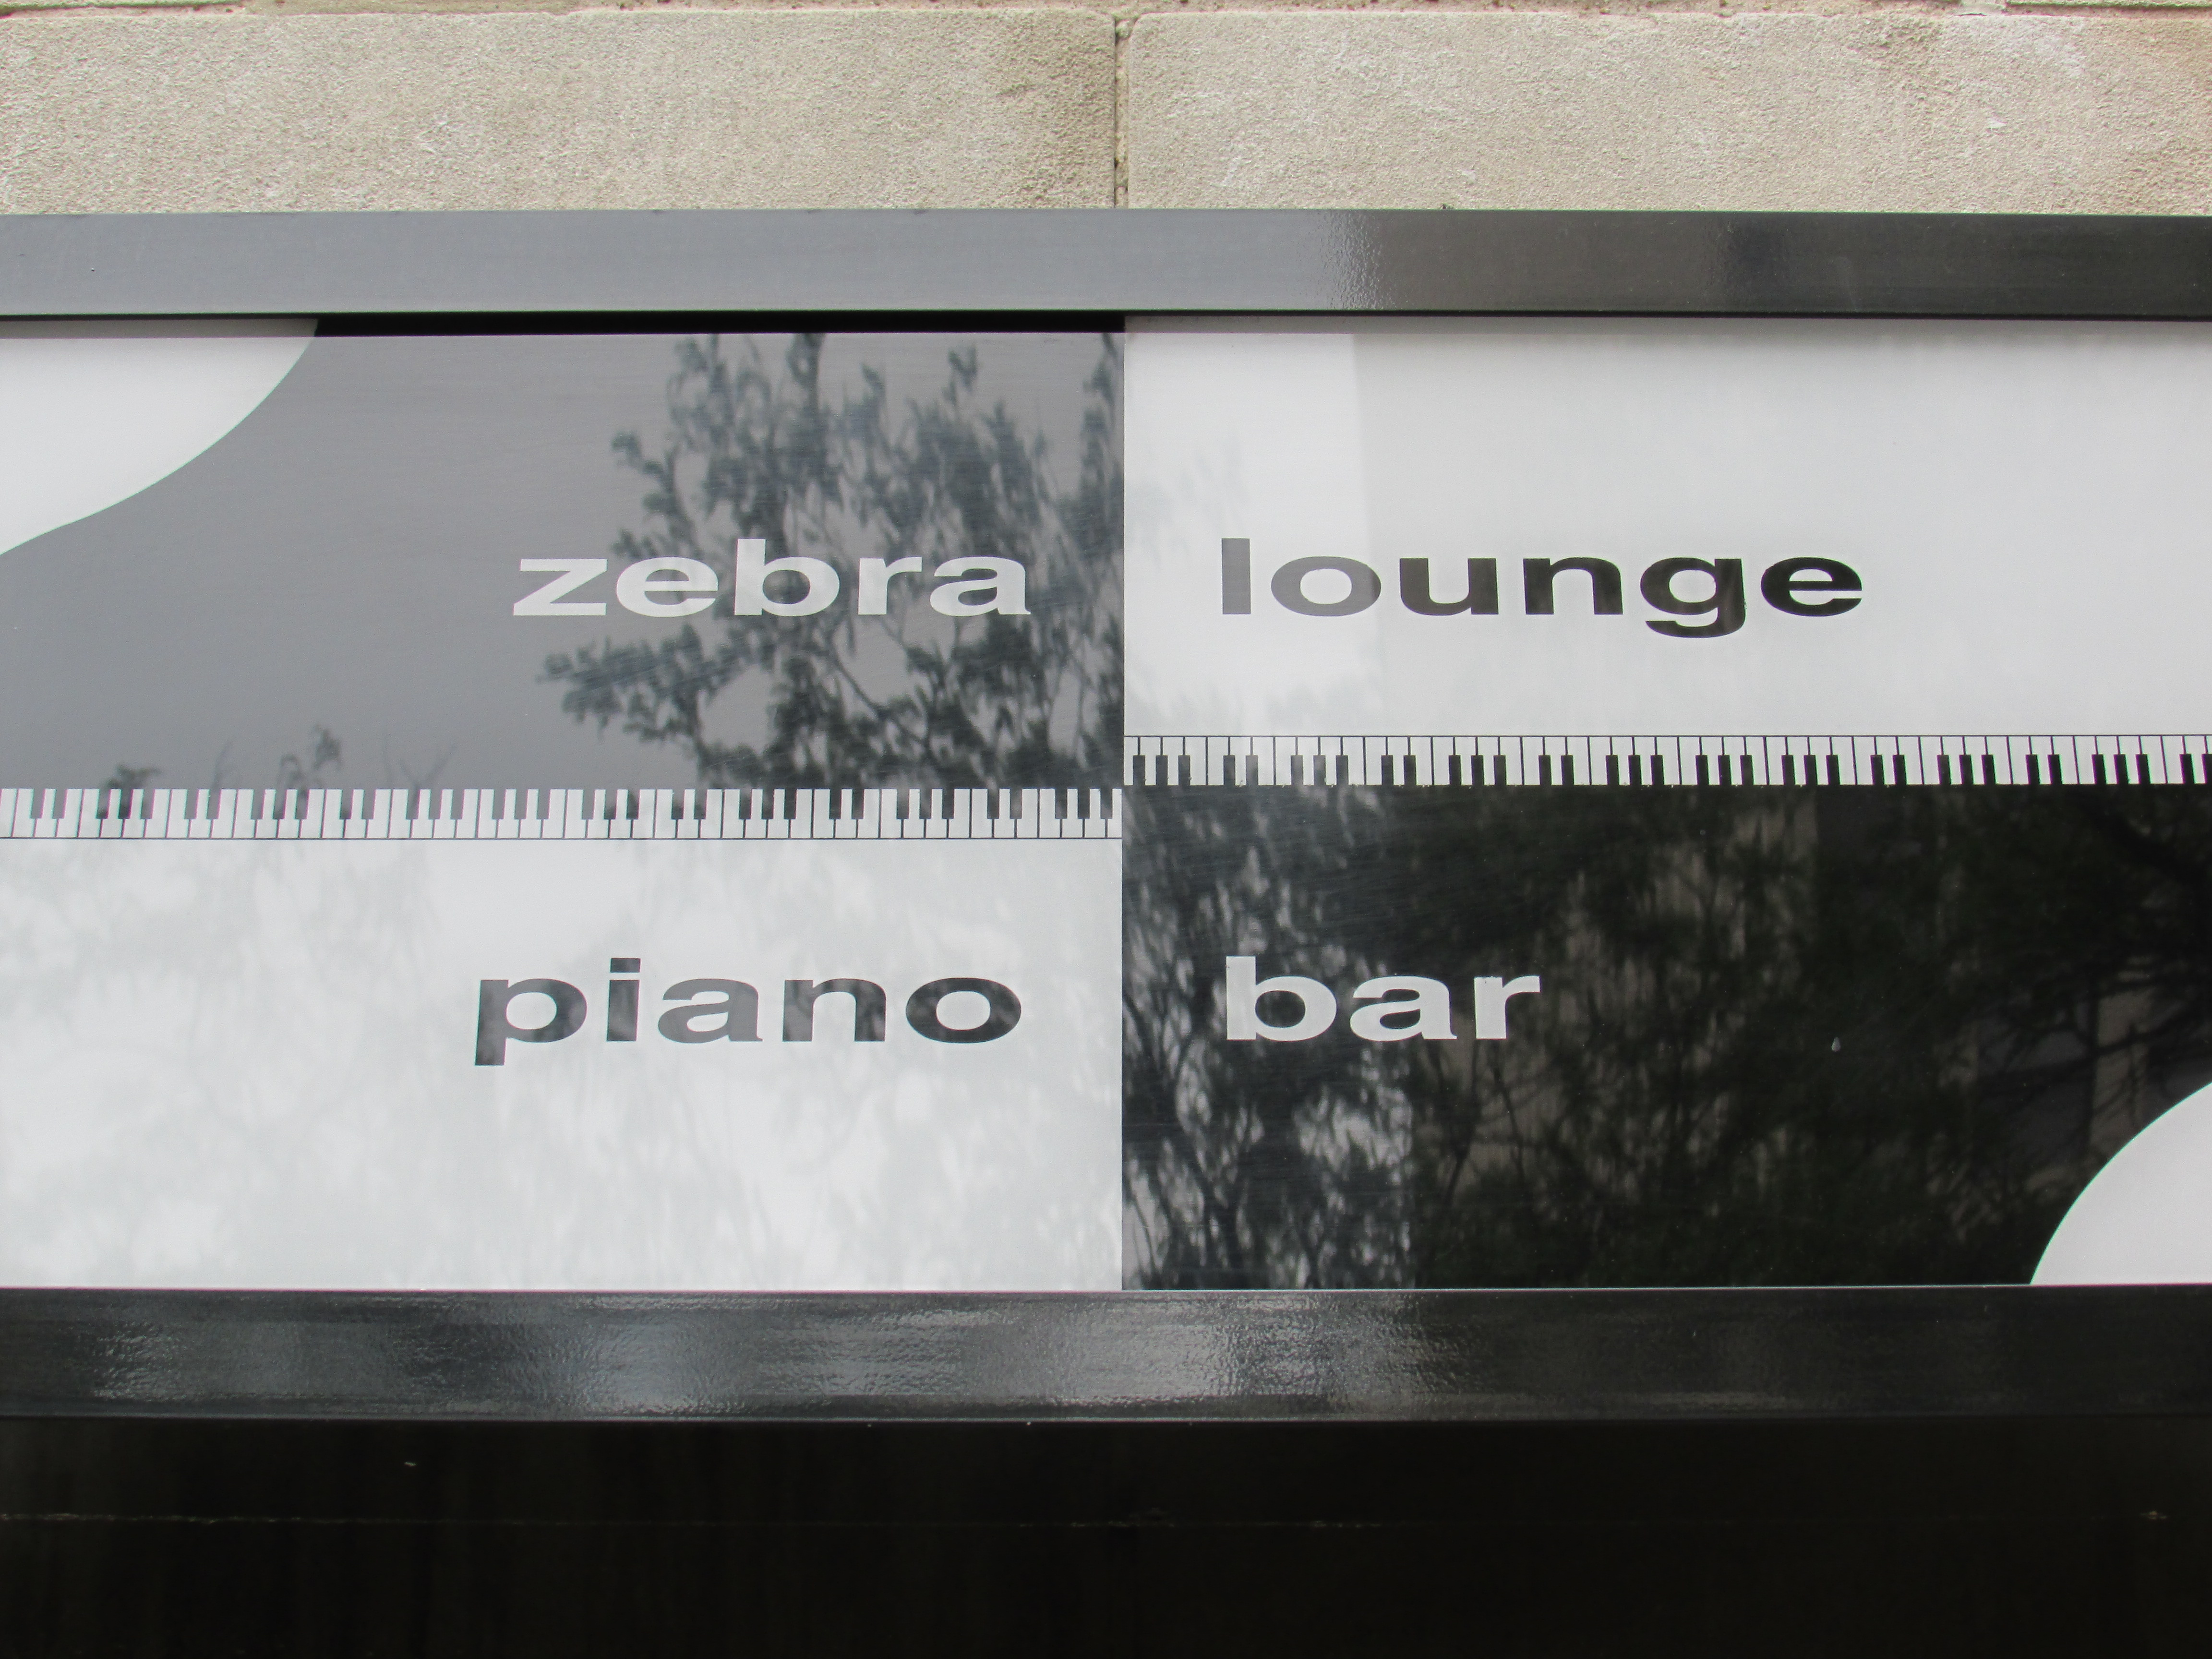 Zebra Lounge Piano Bar